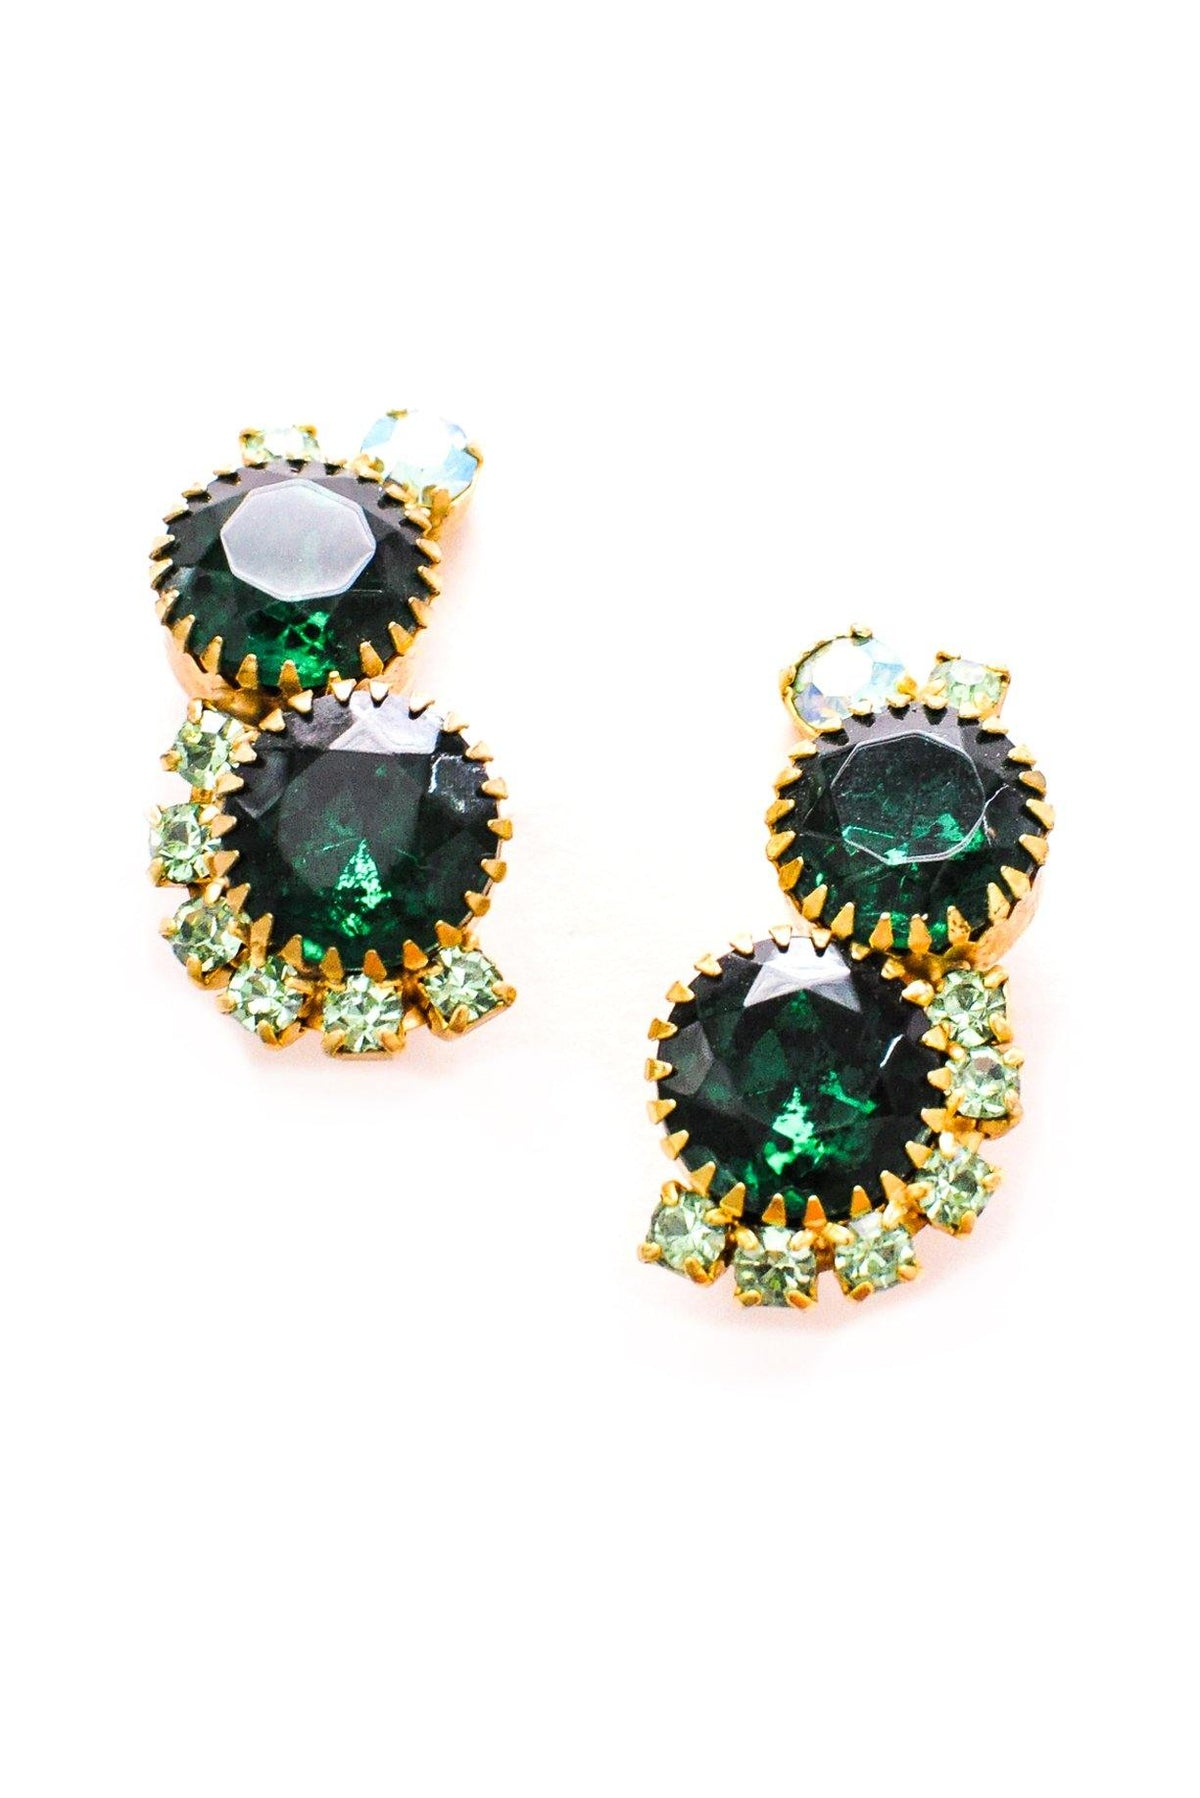 Rhinestone statement earrings from Sweet & Spark.